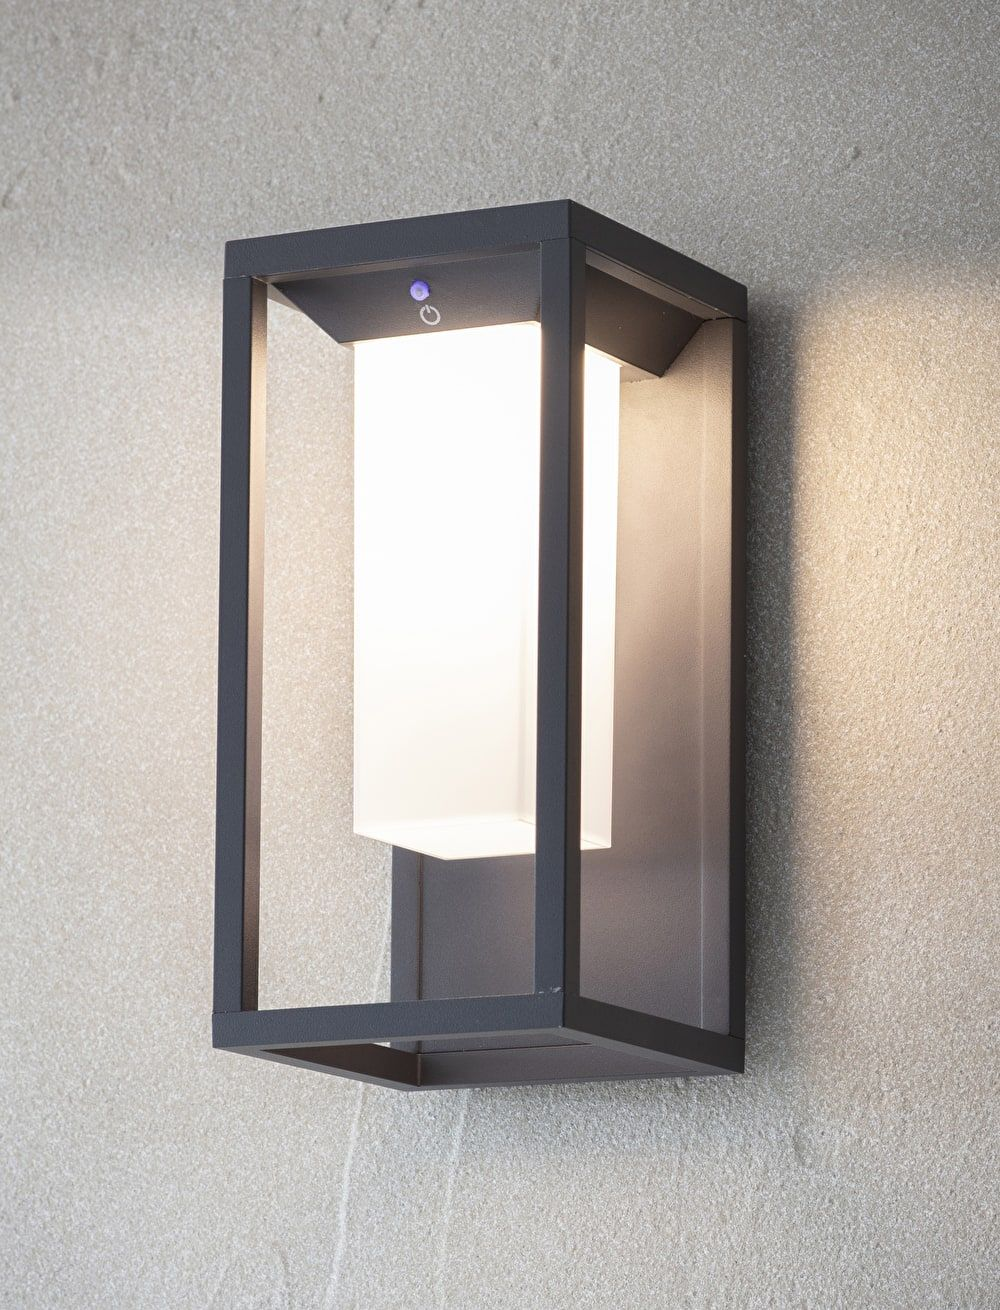 An Outdoor Solar Powered Wall Light With A Matt Grey Frame Click To Buy Now Garden Trading Wall Lights Modern Outdoor Wall Lighting Solar Wall Lights